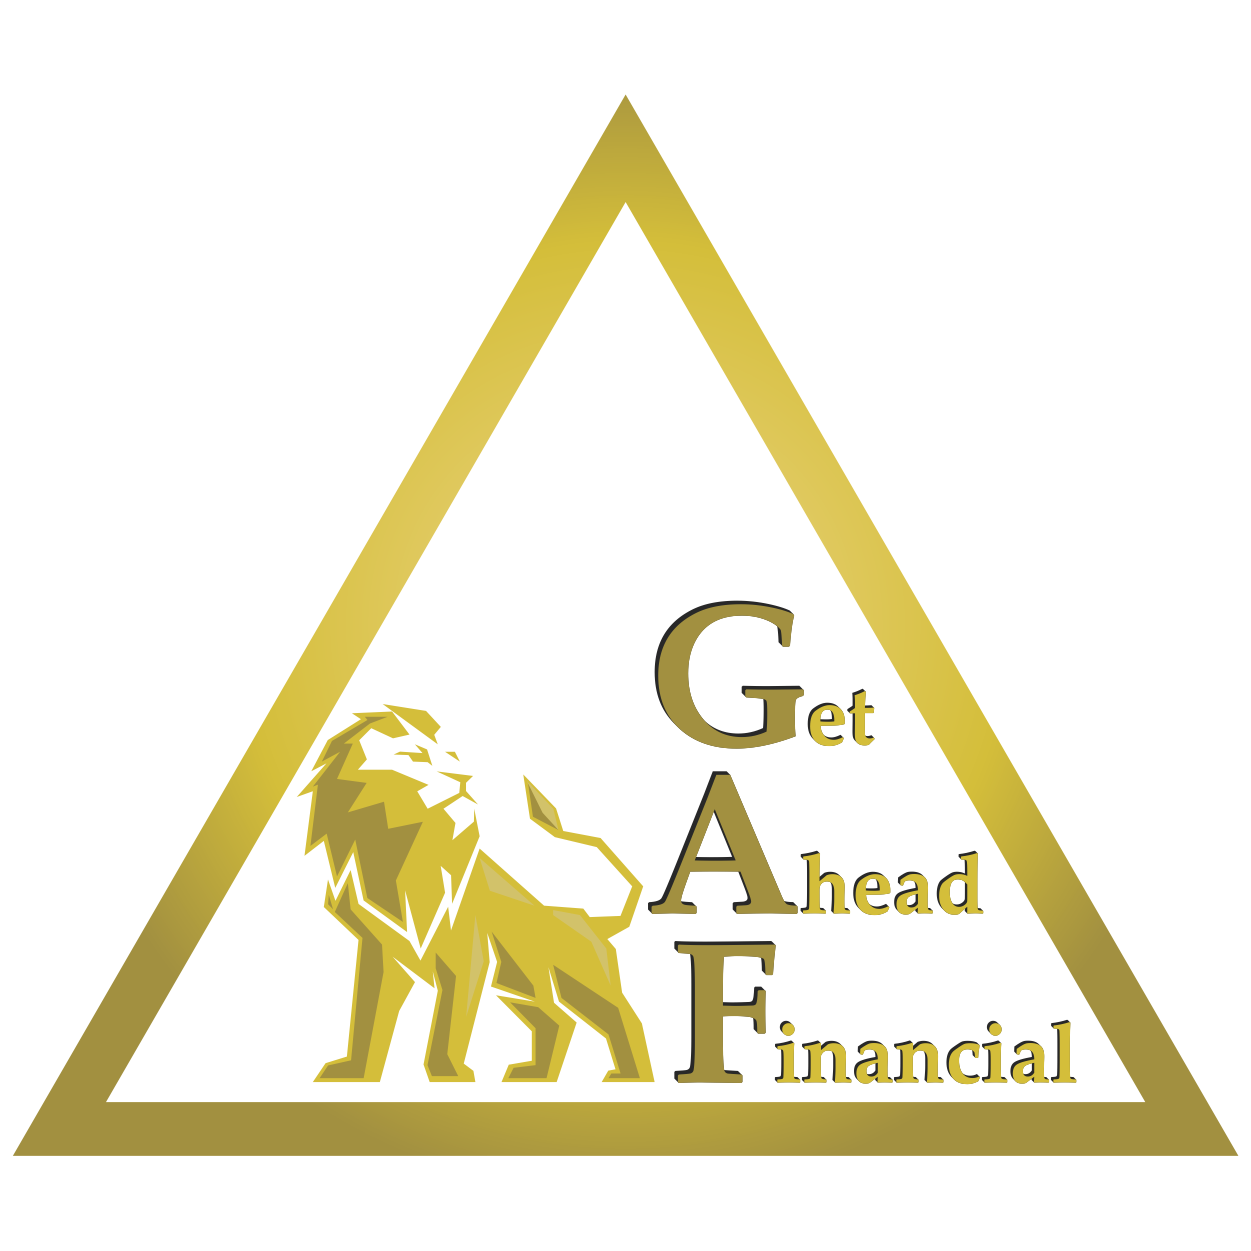 Get Ahead Financial